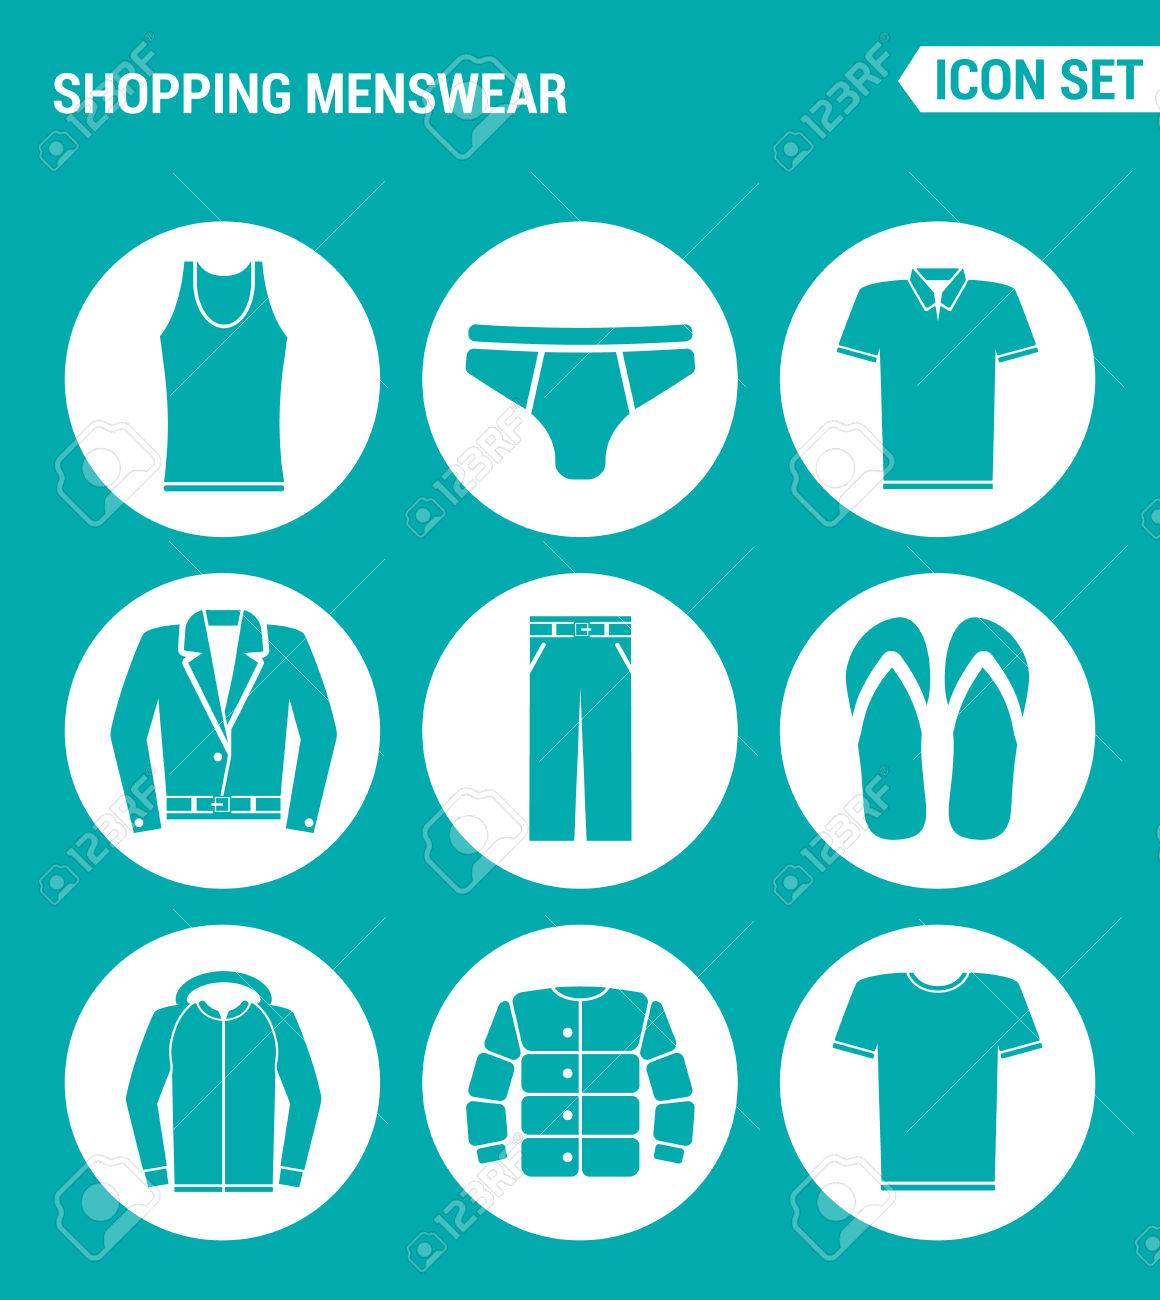 Shirt design vector pack - Vector Vector Set Web Icons Shopping Menswear T Shirt Skirts Pants Sneakers Leather Jacket Shirt Design Of Signs Symbols On A Turquoise Background